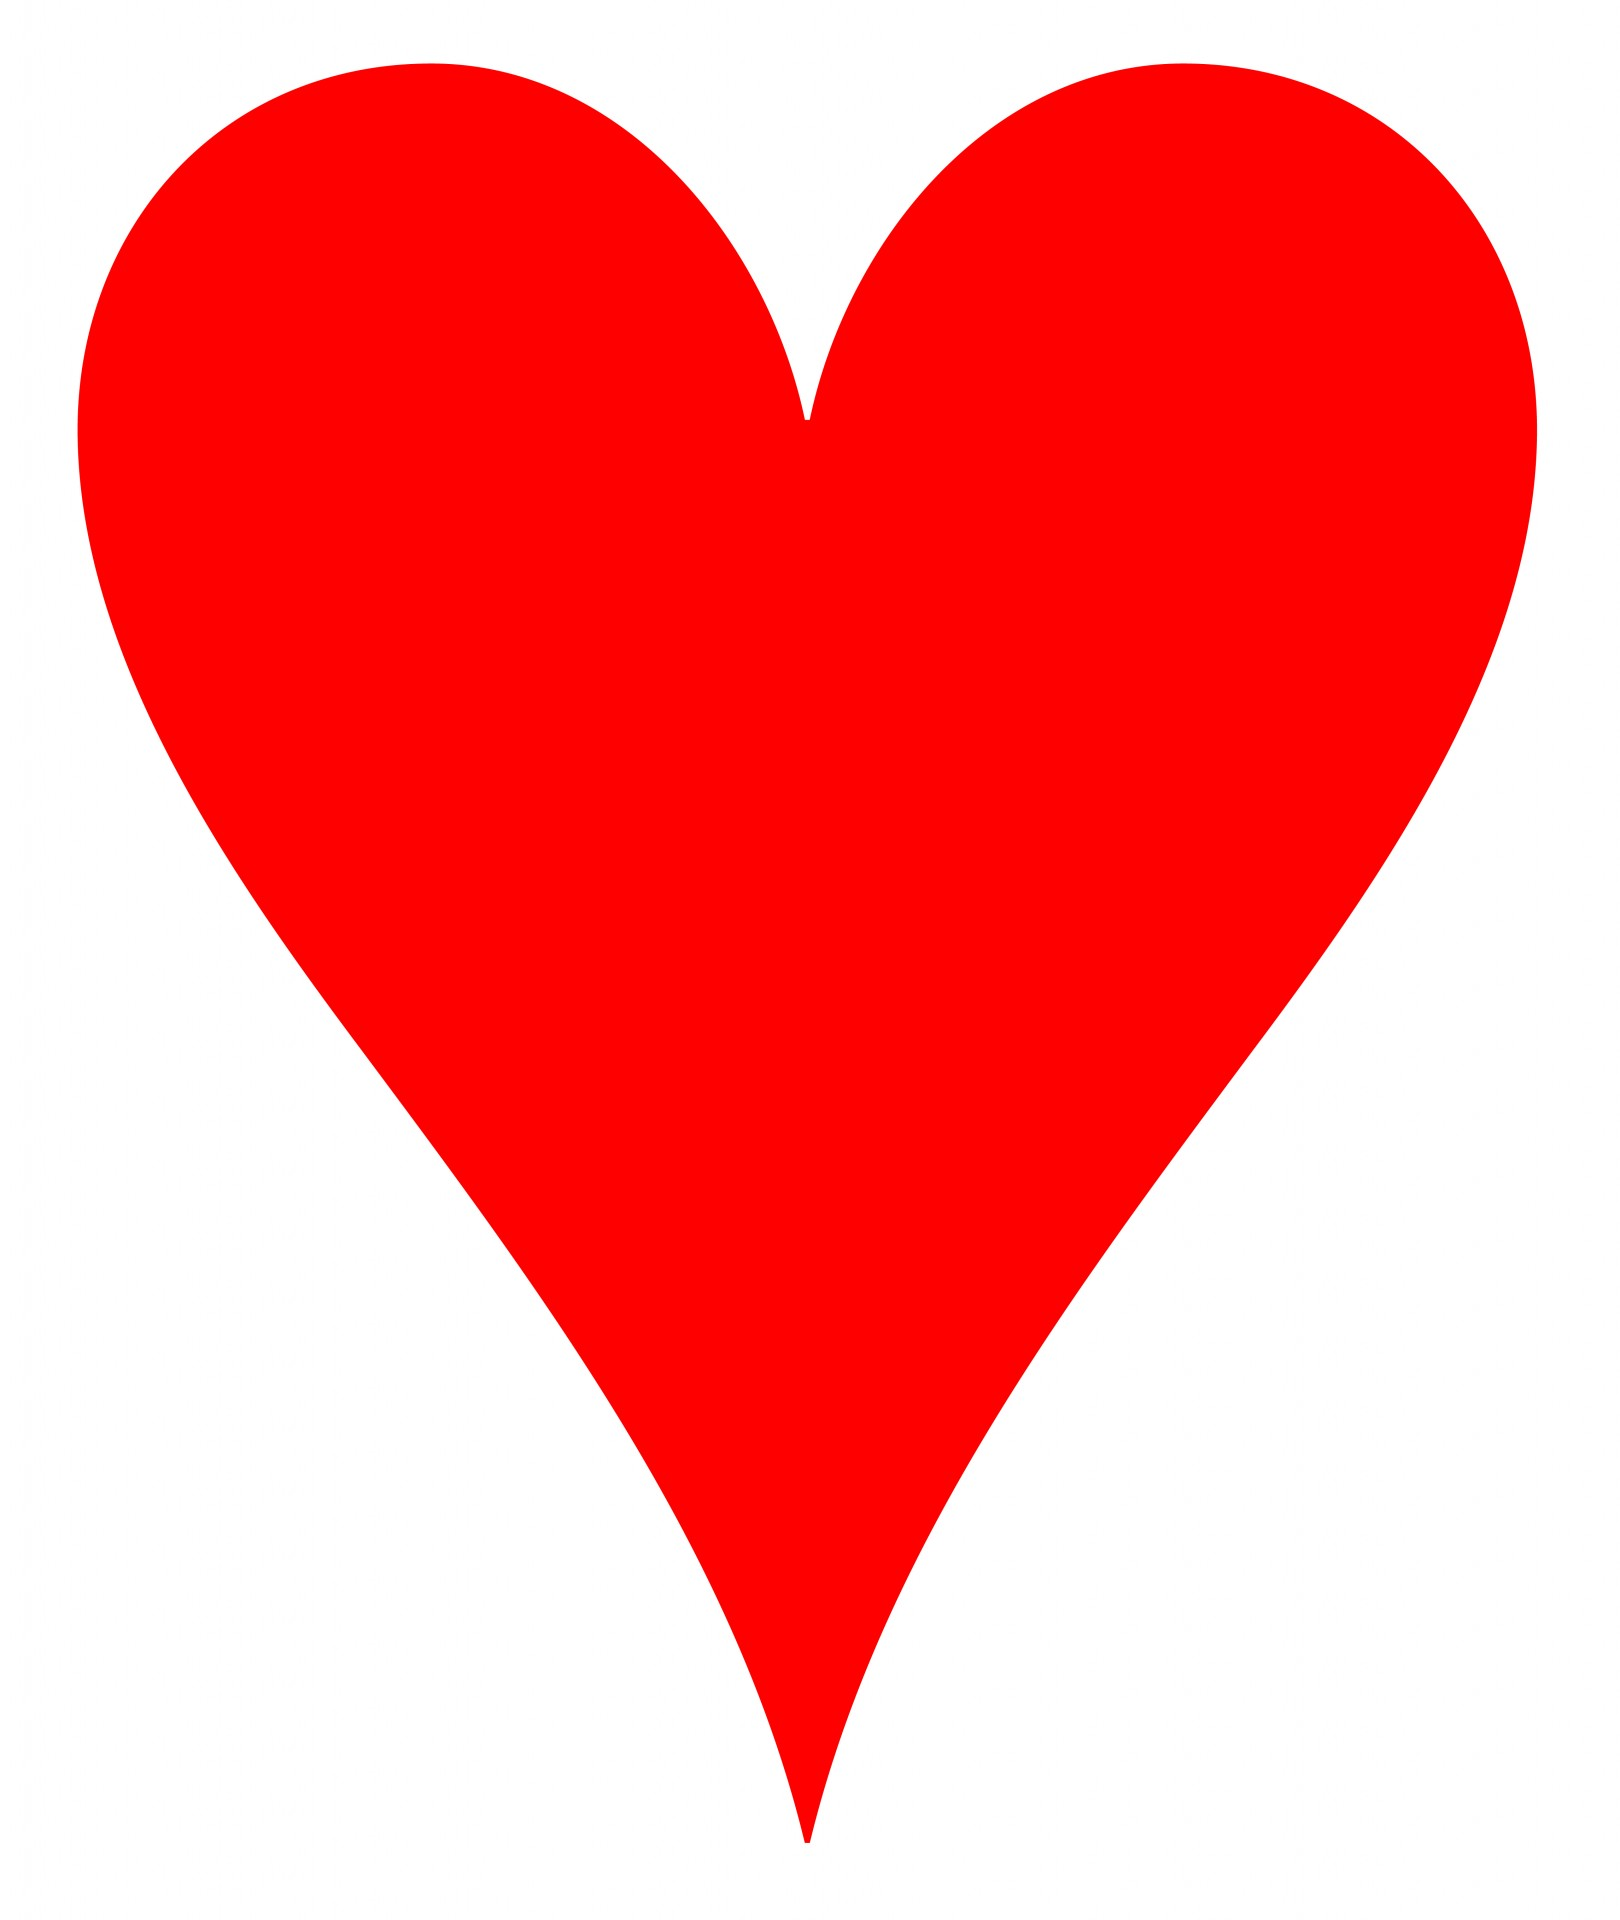 Red heart,heart,red,clipart,love